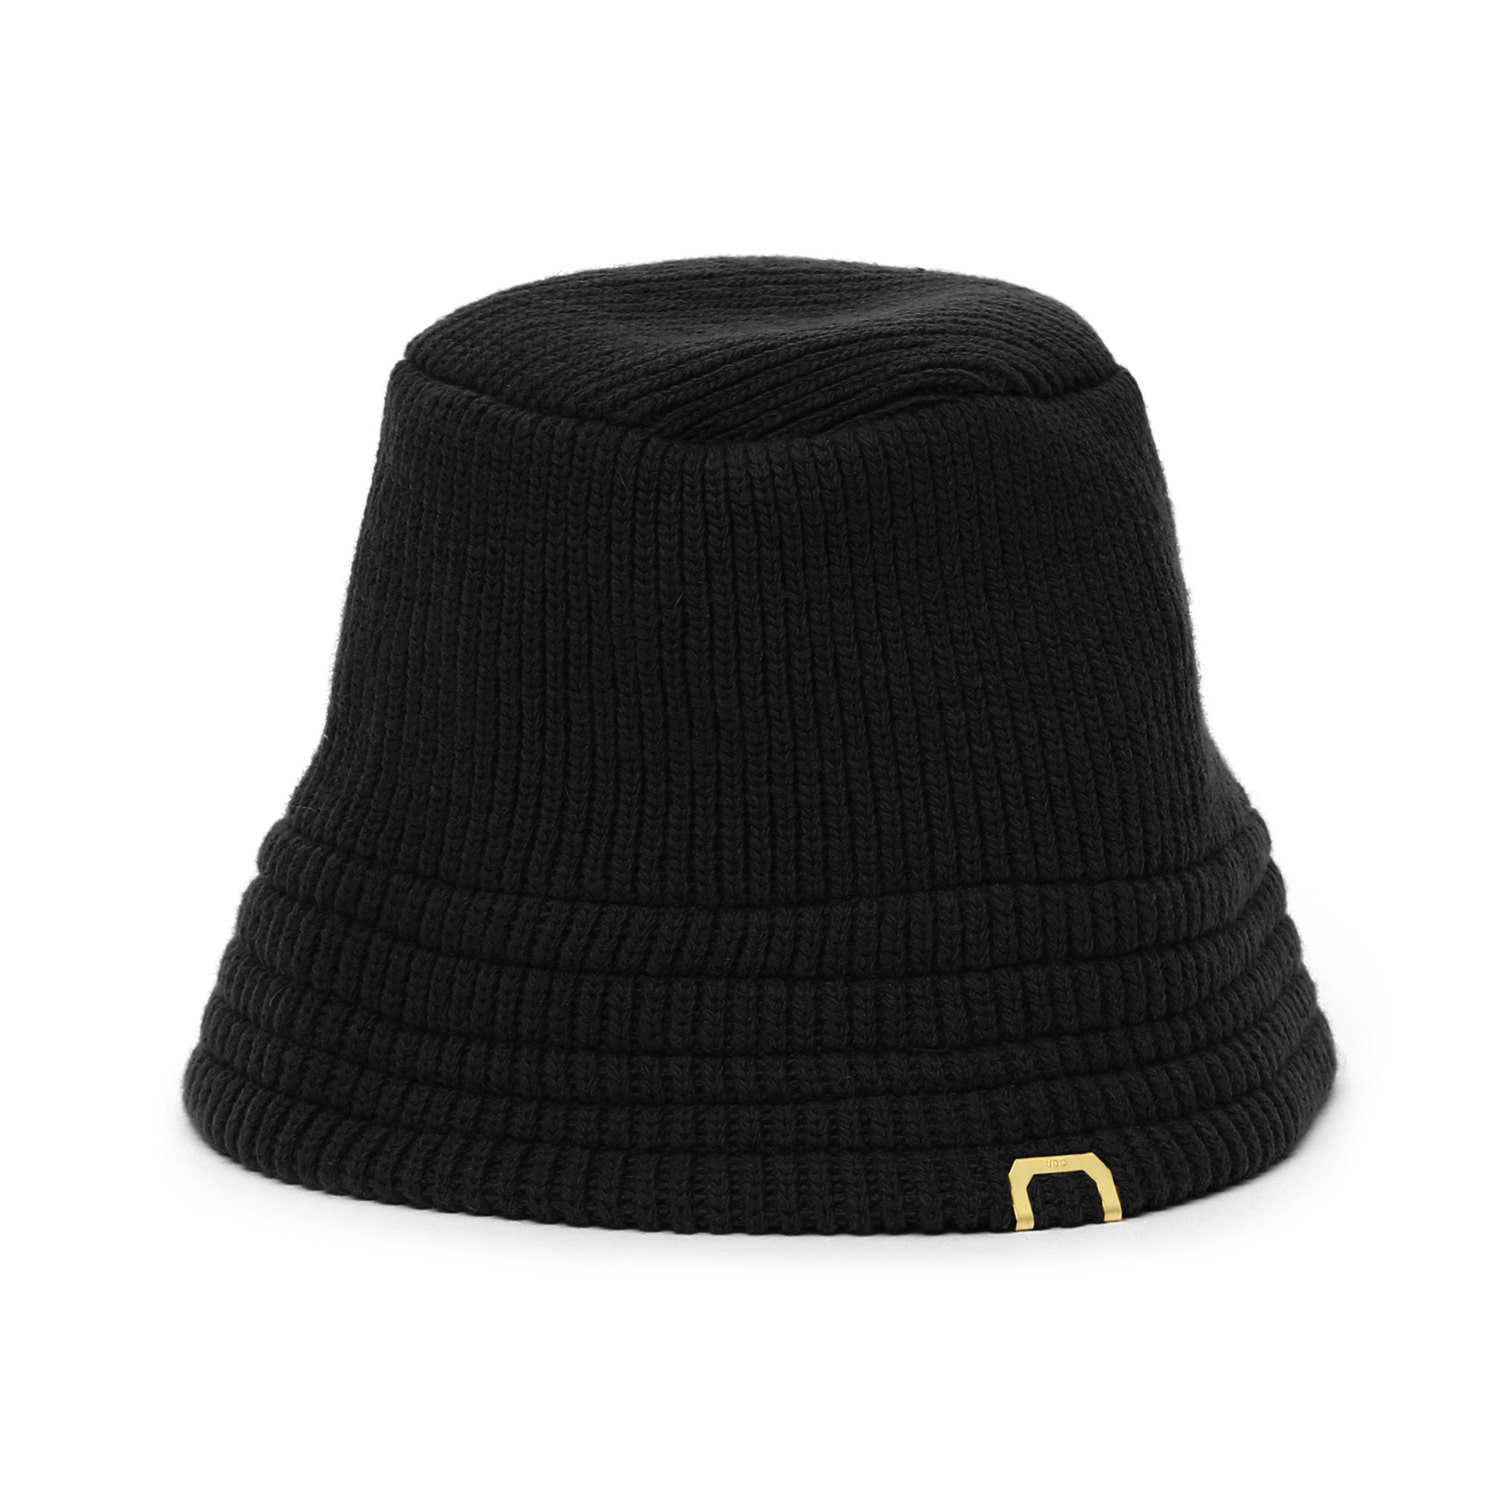 KNIT BUCKET / LAMBS WOOL / BLACK